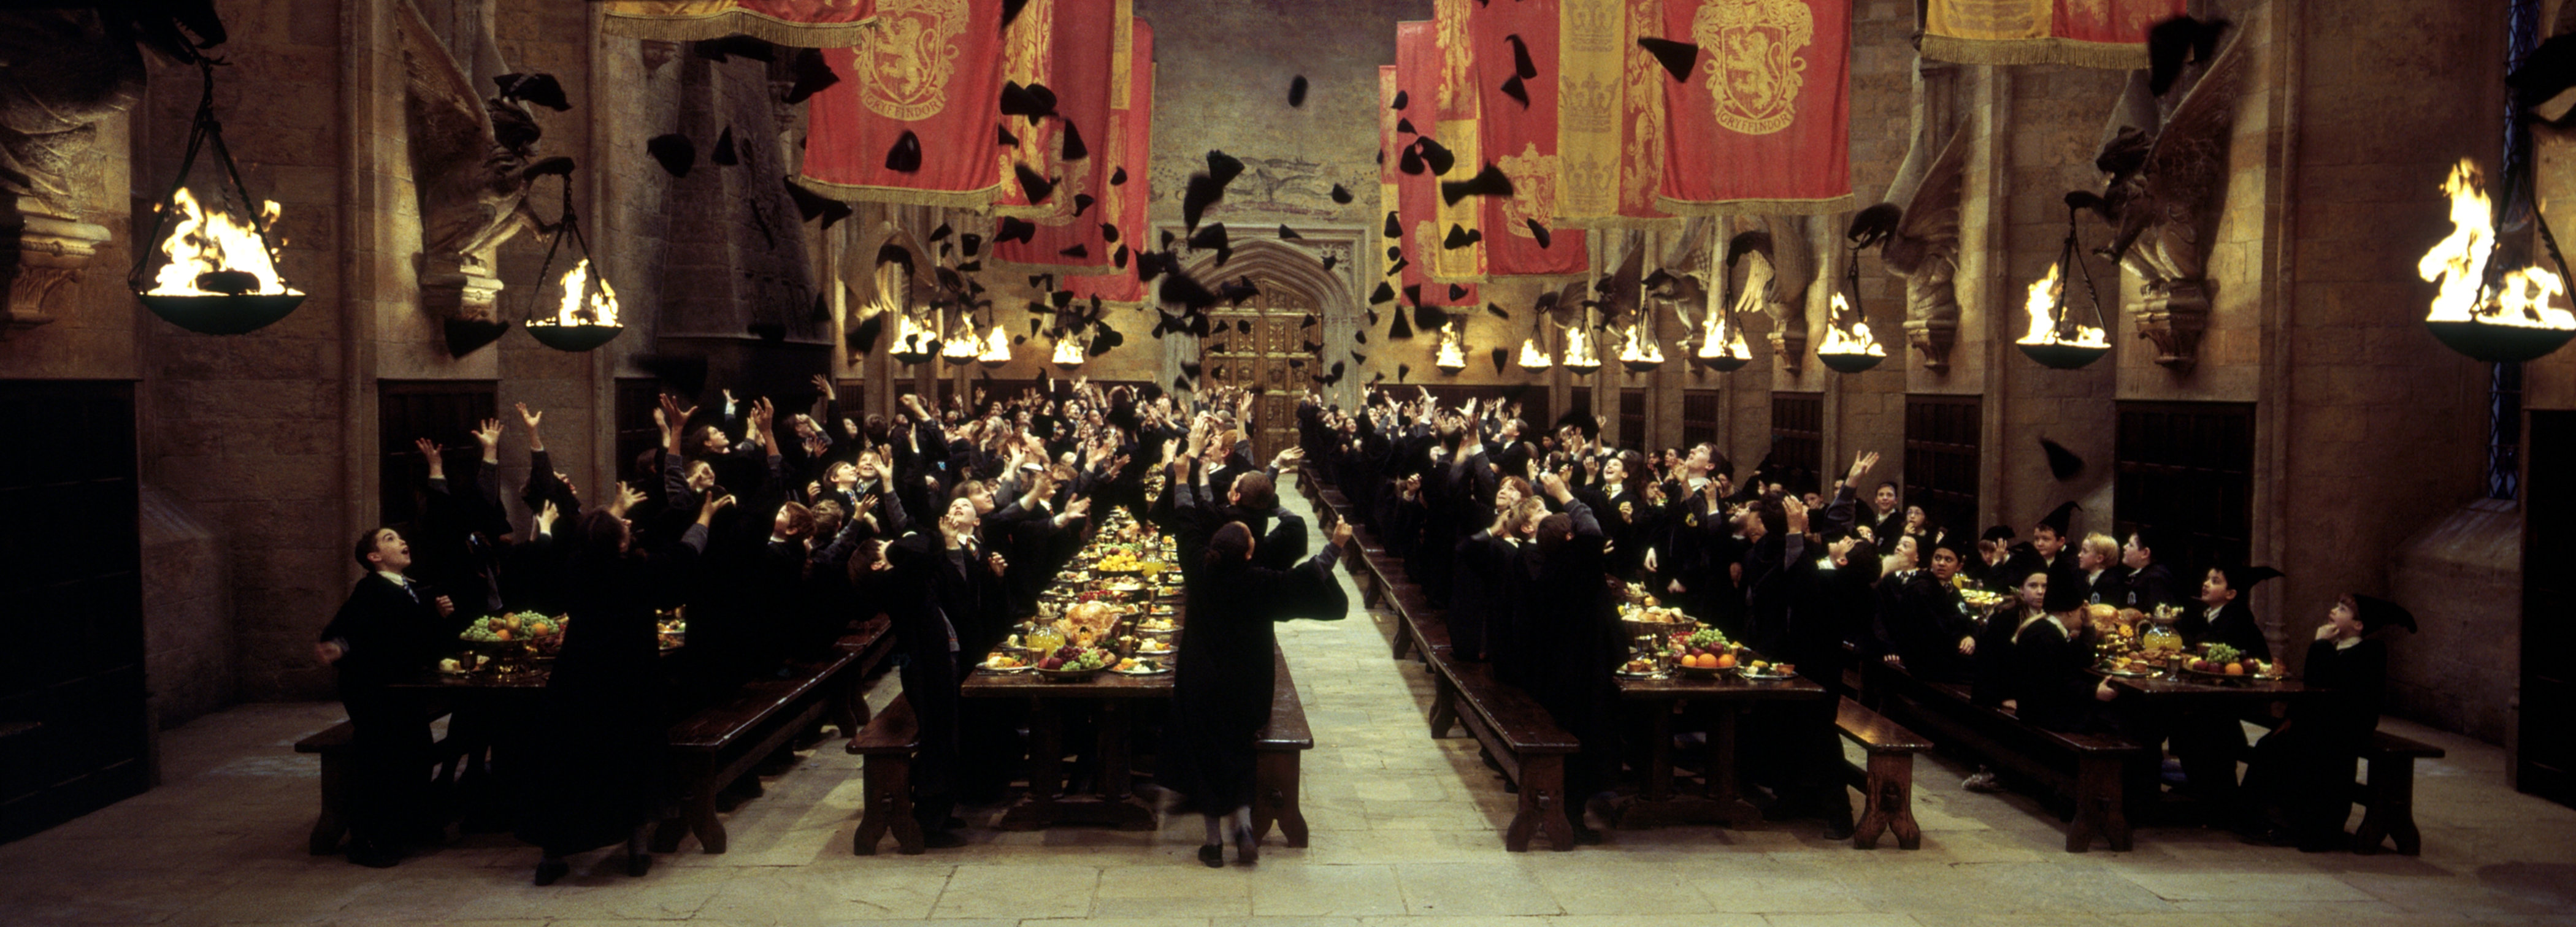 Hats fly in the air when Gryffindor win the House Cup